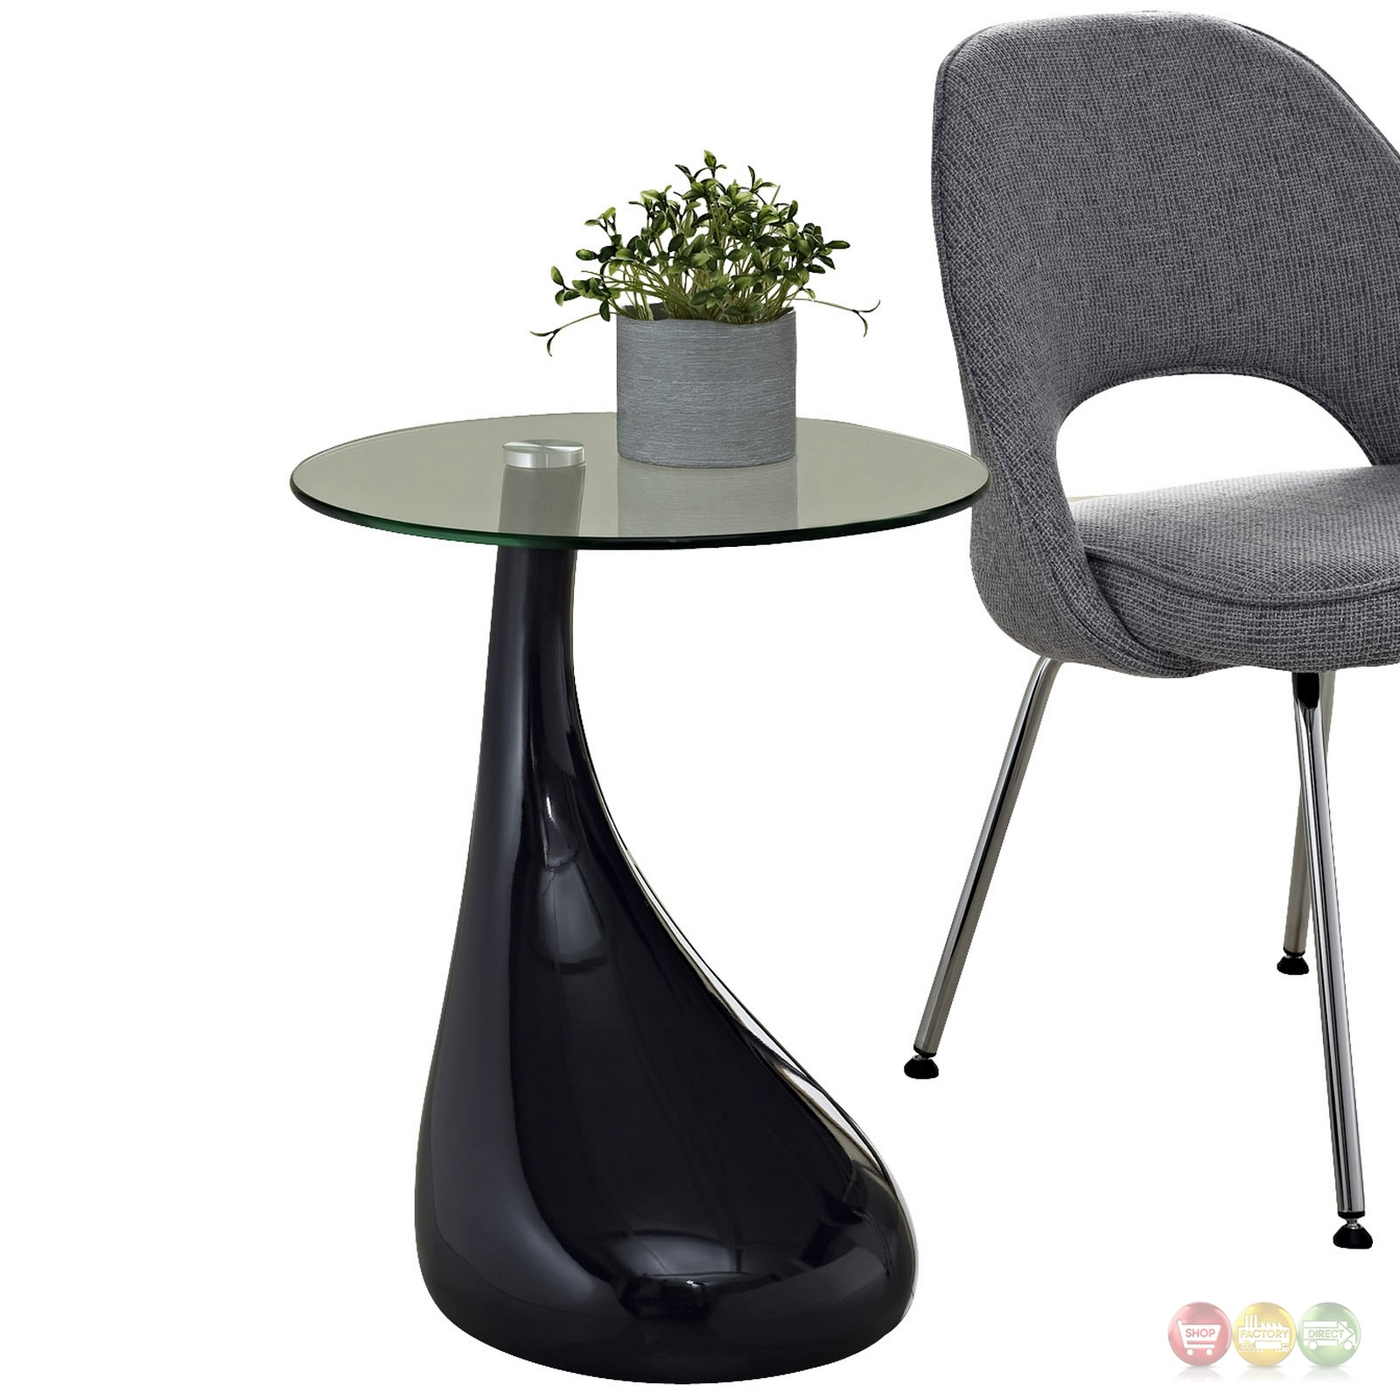 Black Modern Side Table Teardrop Modern Shapely Side Table With Glass Top Black